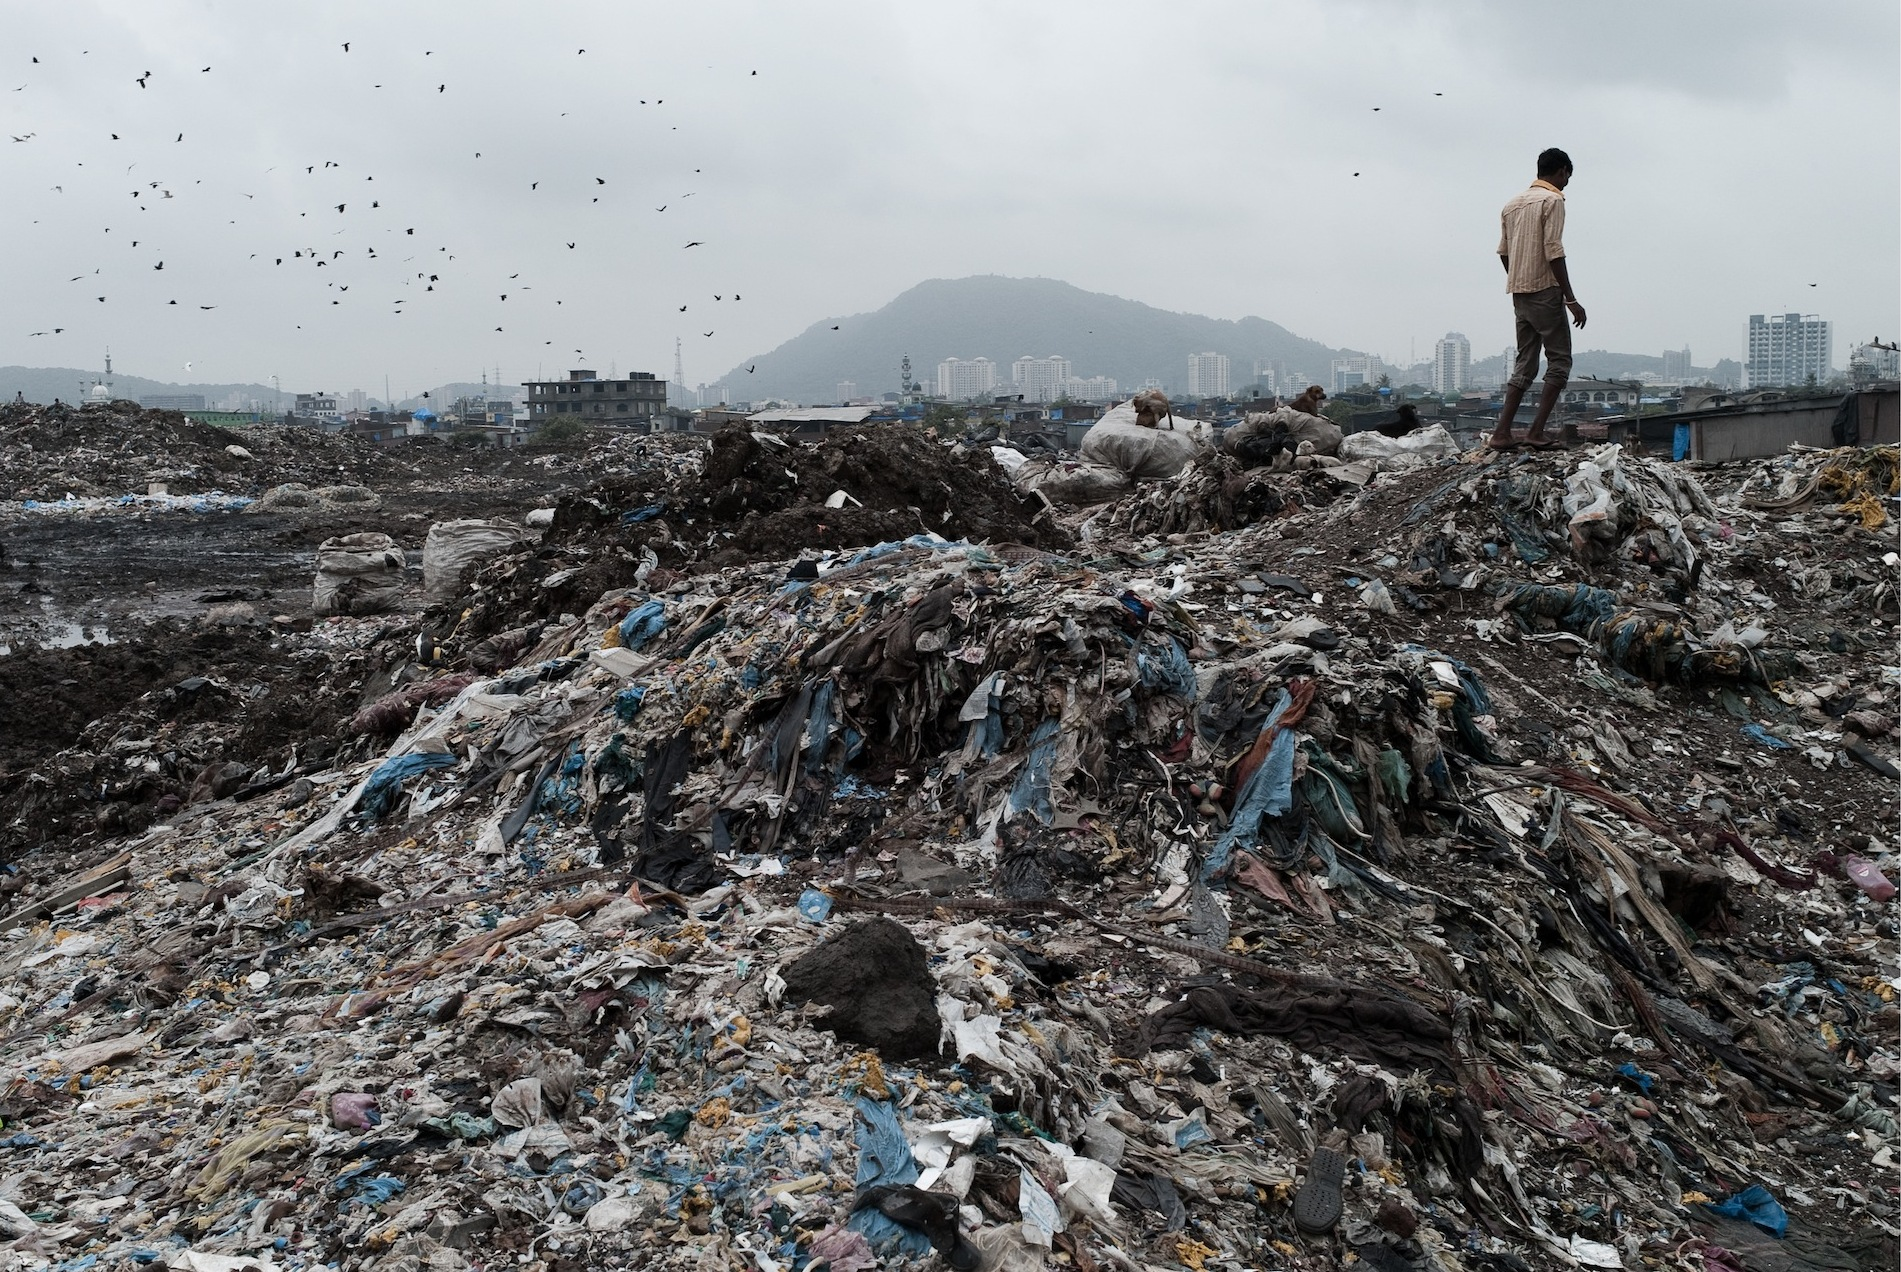 The Deonar dumping ground extends over 132 hectares and receives 5,500 metric tonnes of waste, 600 metric tonnes of silt and 25 tonnes of bio-medical waste daily. Source: www.colombotelegraph.com